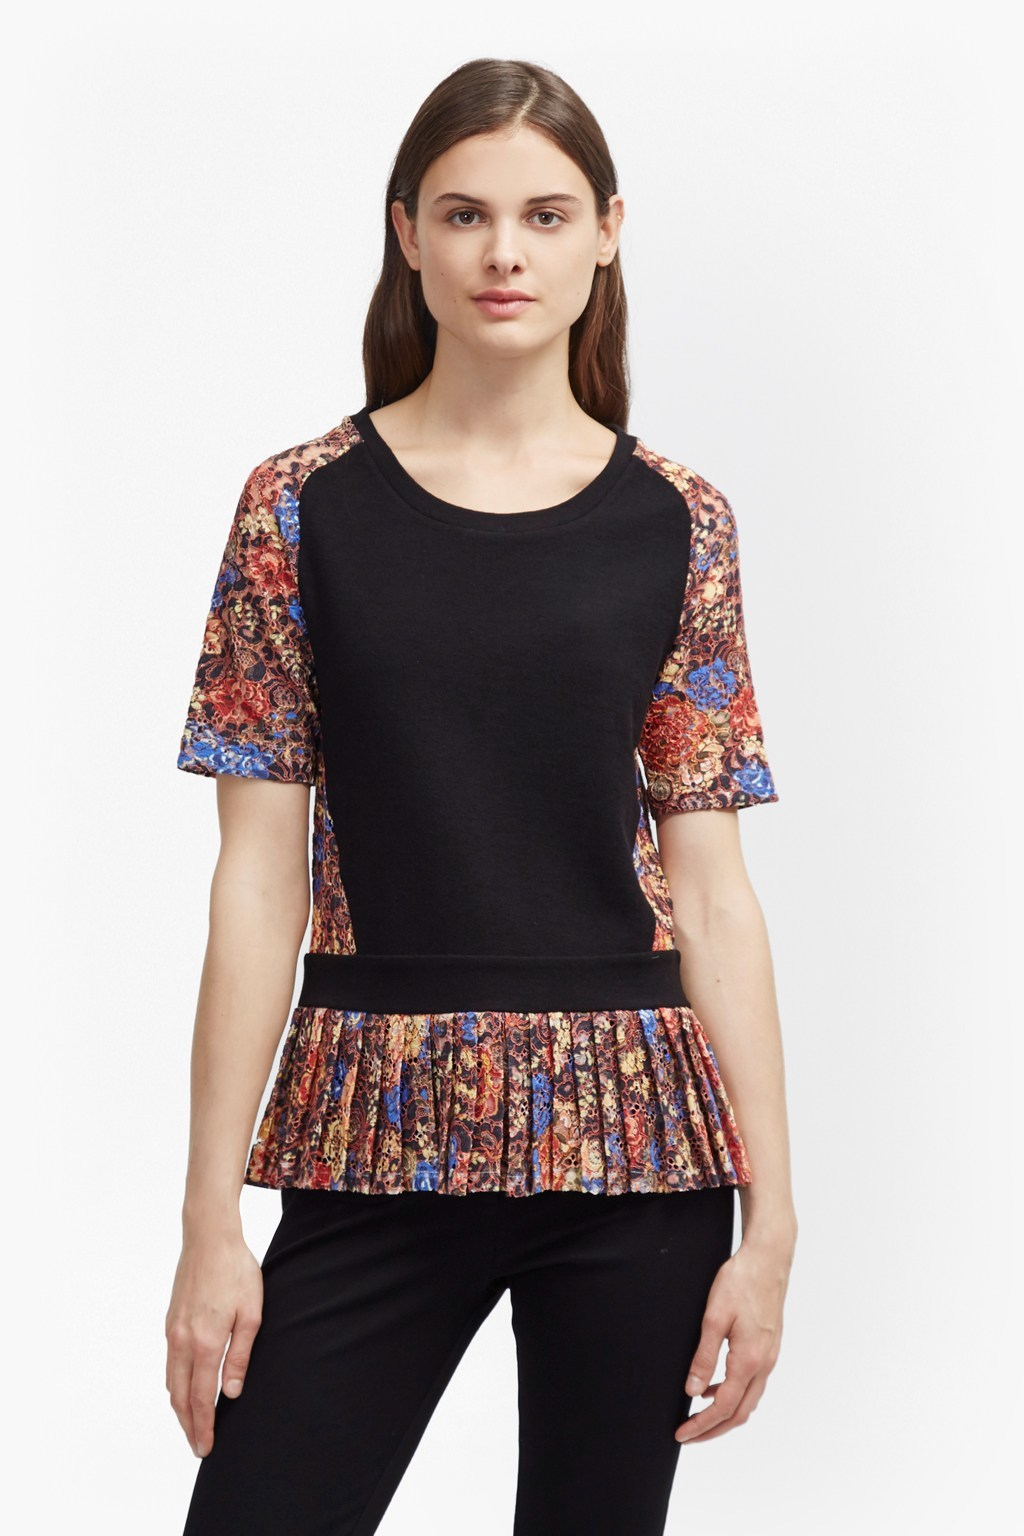 Flora Jersey Lace Top Black Multi - neckline: round neck; predominant colour: black; occasions: evening; length: standard; style: top; fibres: cotton - 100%; fit: body skimming; hip detail: subtle/flattering hip detail; sleeve length: short sleeve; sleeve style: standard; pattern type: fabric; pattern: florals; texture group: jersey - stretchy/drapey; secondary colour: dusky pink; multicoloured: multicoloured; season: a/w 2016; wardrobe: event